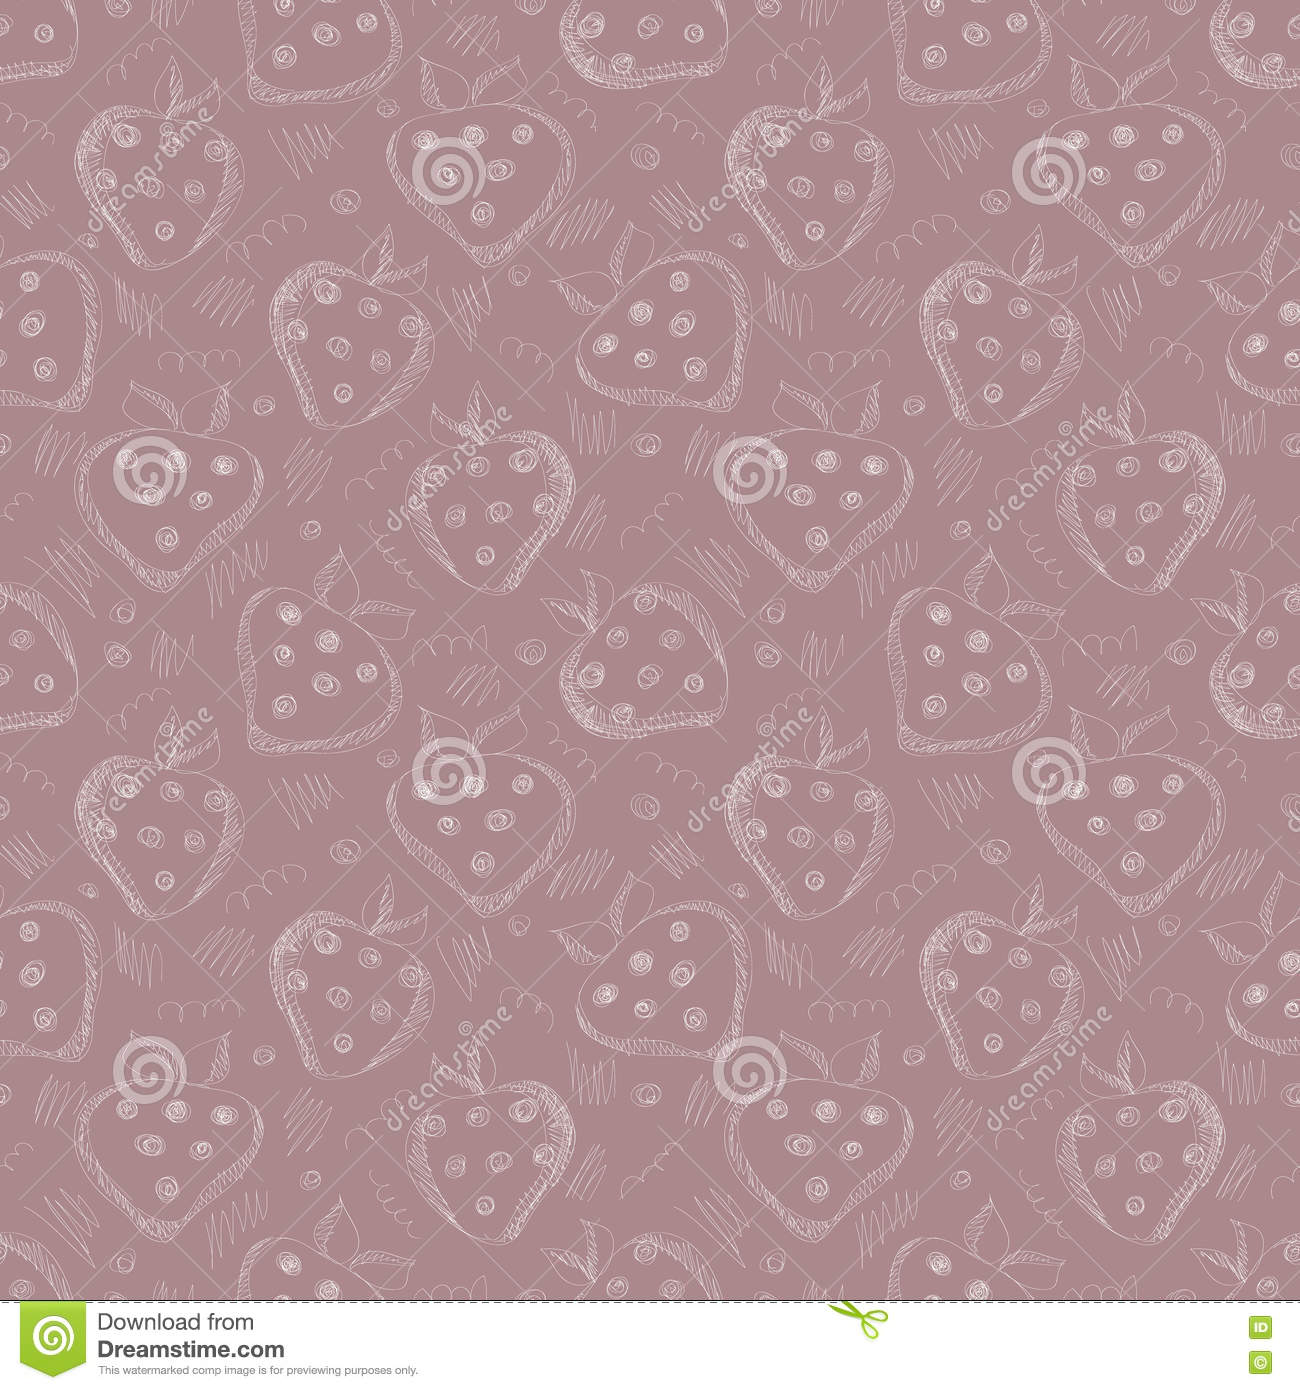 Seamless vector gray pattern with hand drawn strawberries and scribbles on the vinous background.